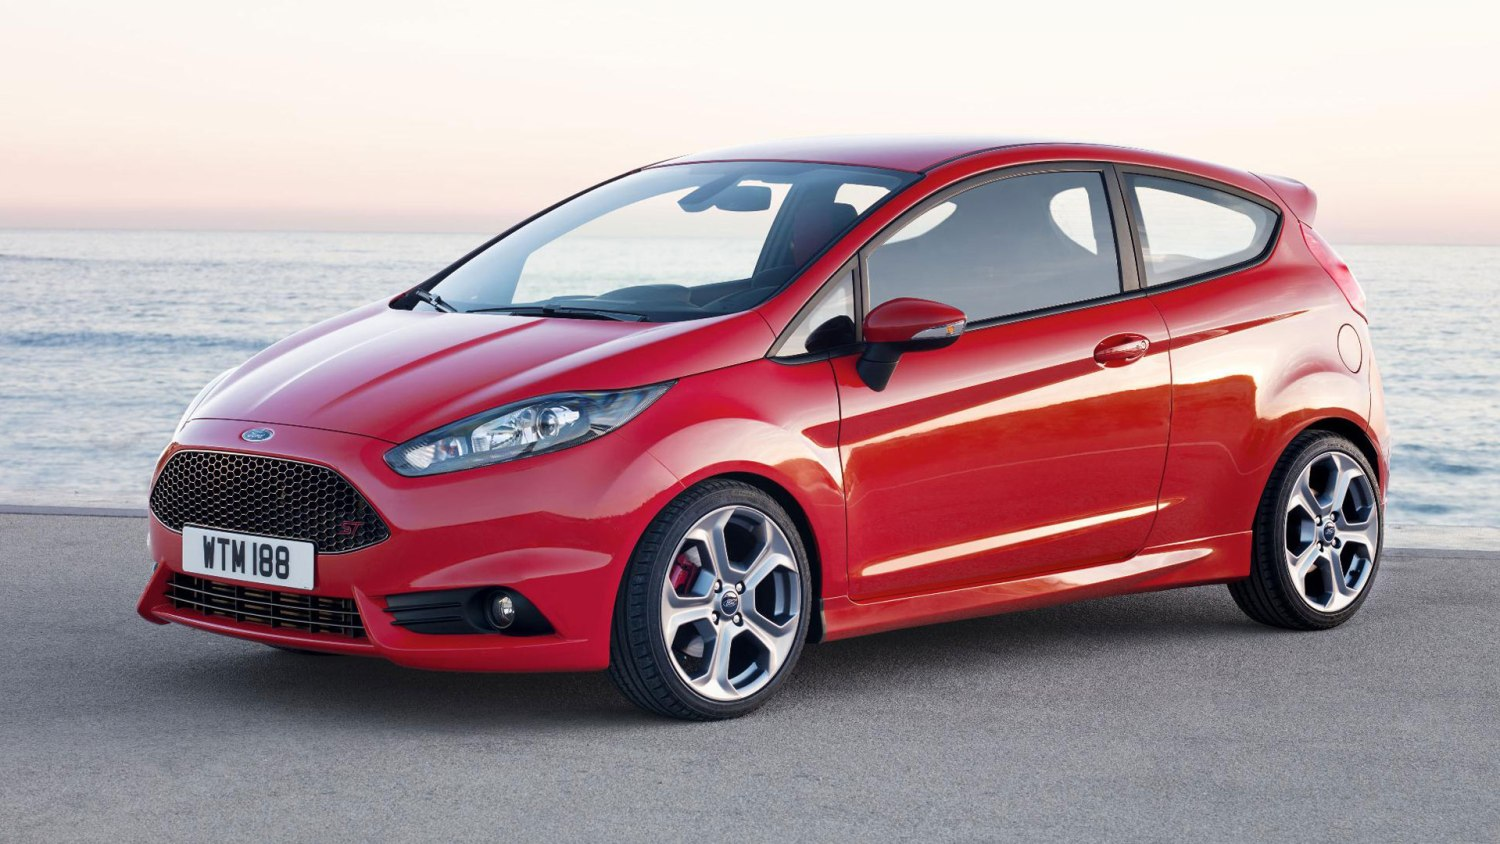 Ford Fiesta ST - greatest cars of the decade